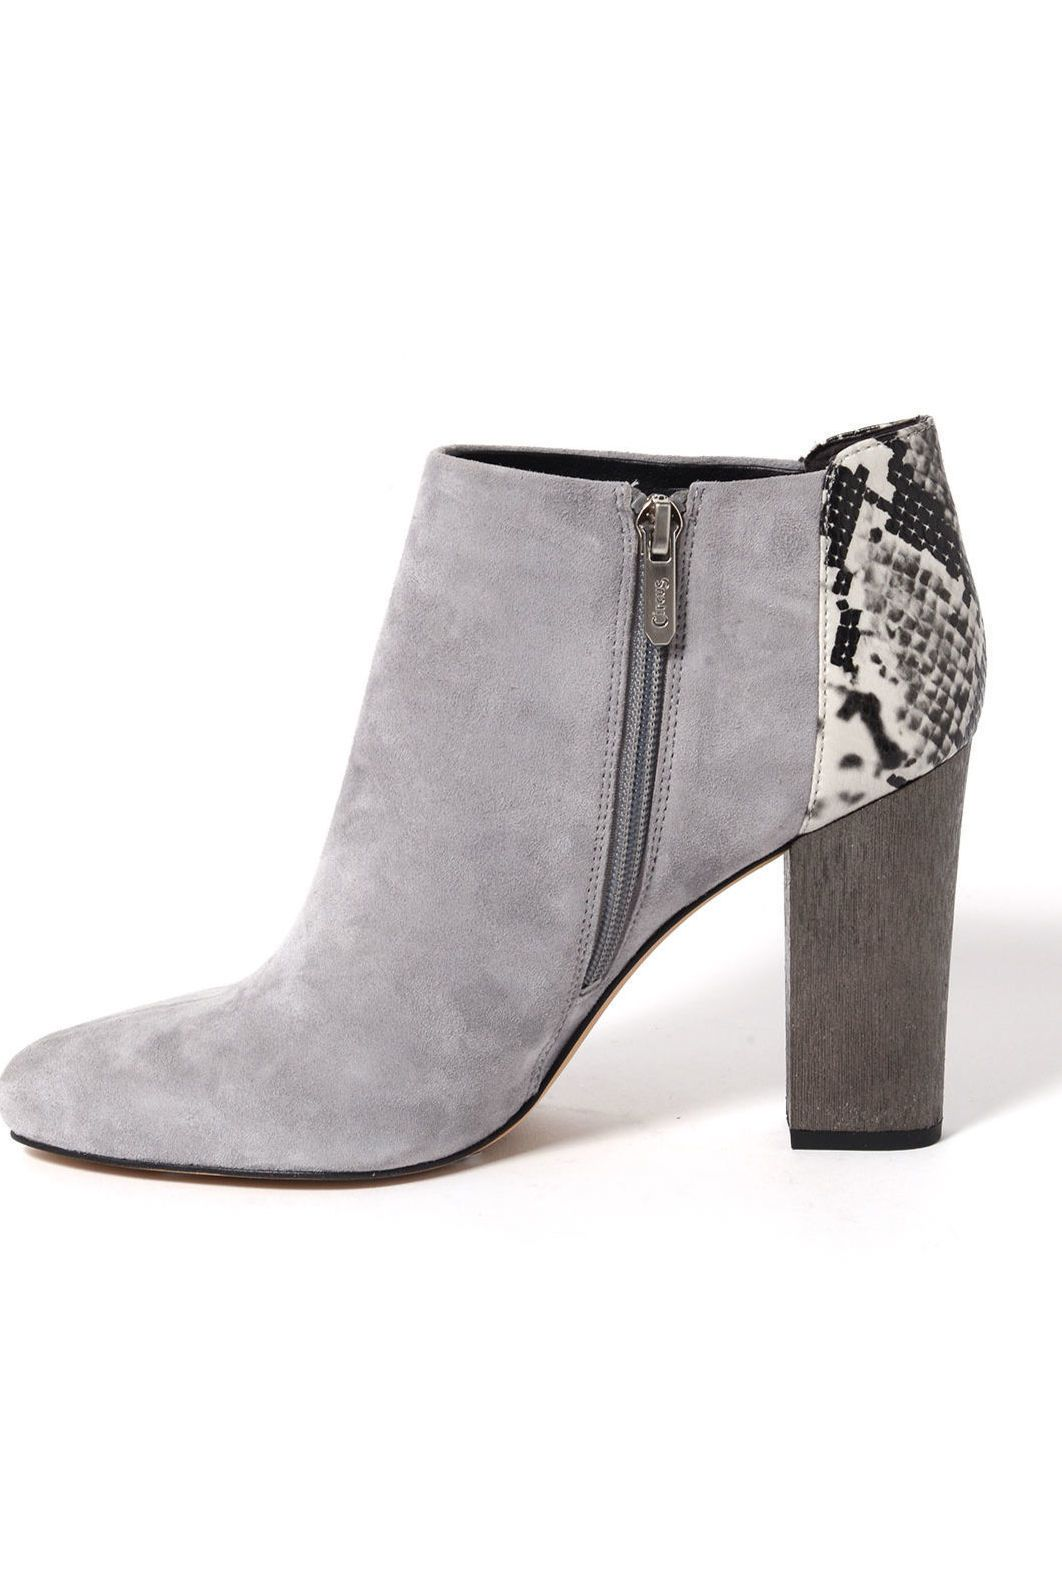 1c0477100776a7 Circus by Sam Edelman Mixed Media Bootie in GREY